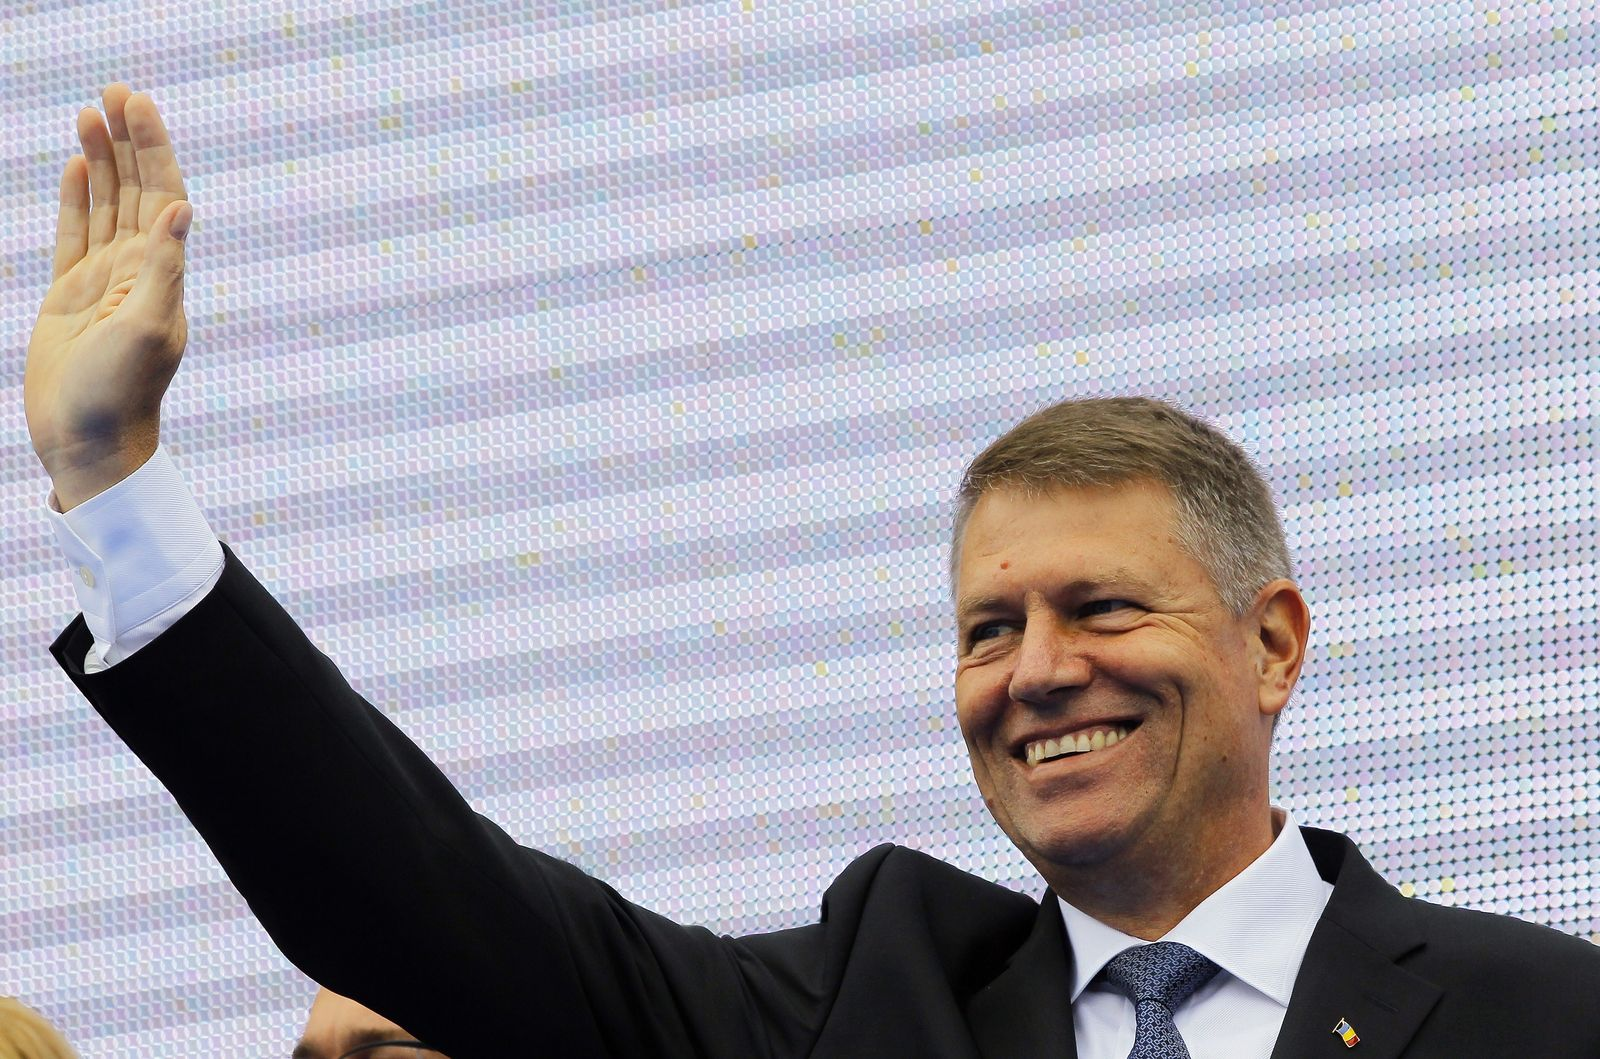 Klaus Johannis running for presidential race in Romania